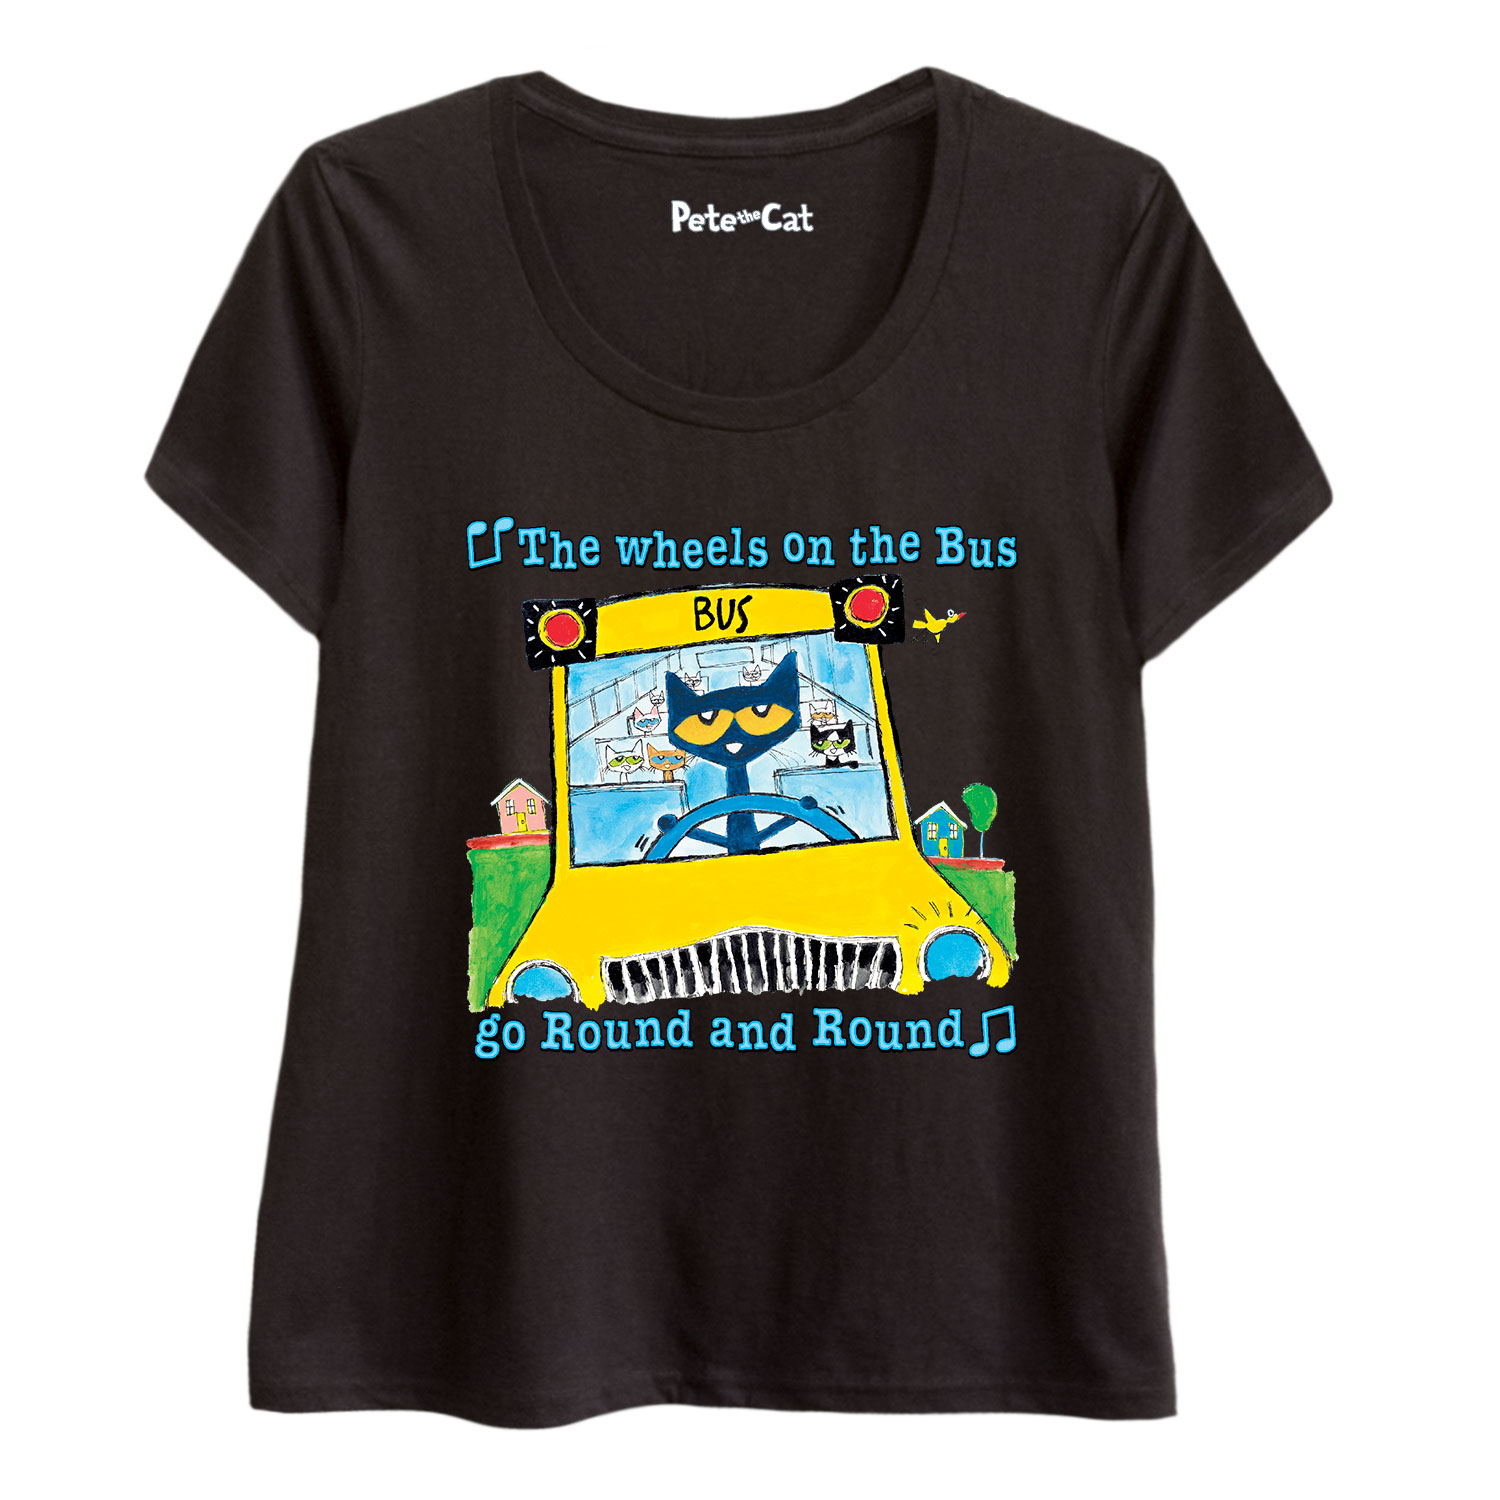 Pete The Cat Wheels On The Bus Multi - Adult Ladies Plus Size Scoop Neck Tee